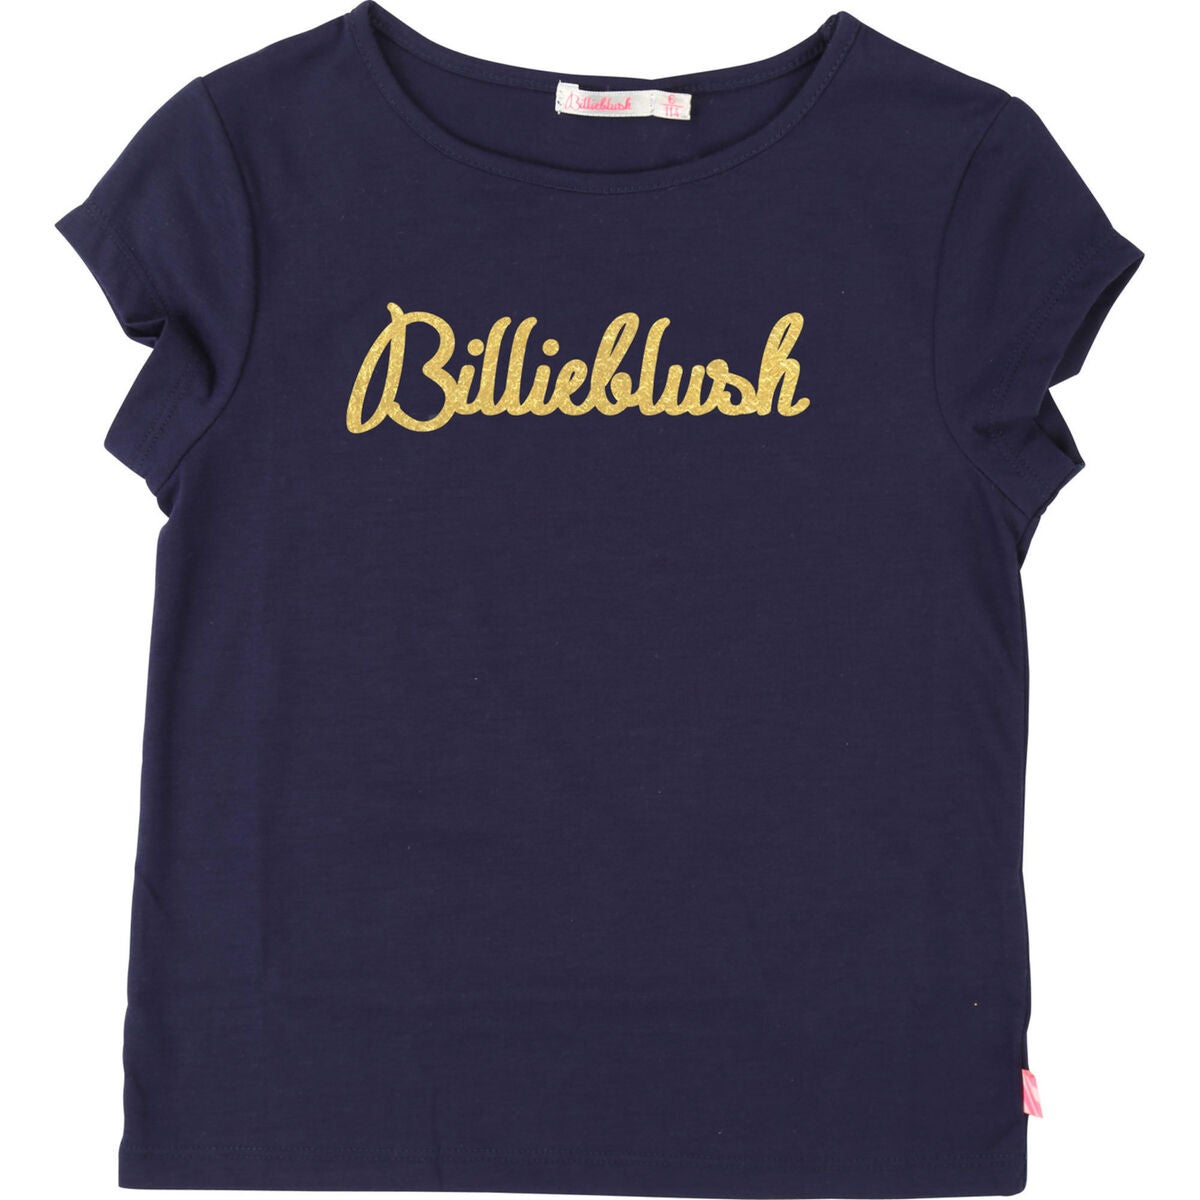 Billieblush T-Shirt, Navy